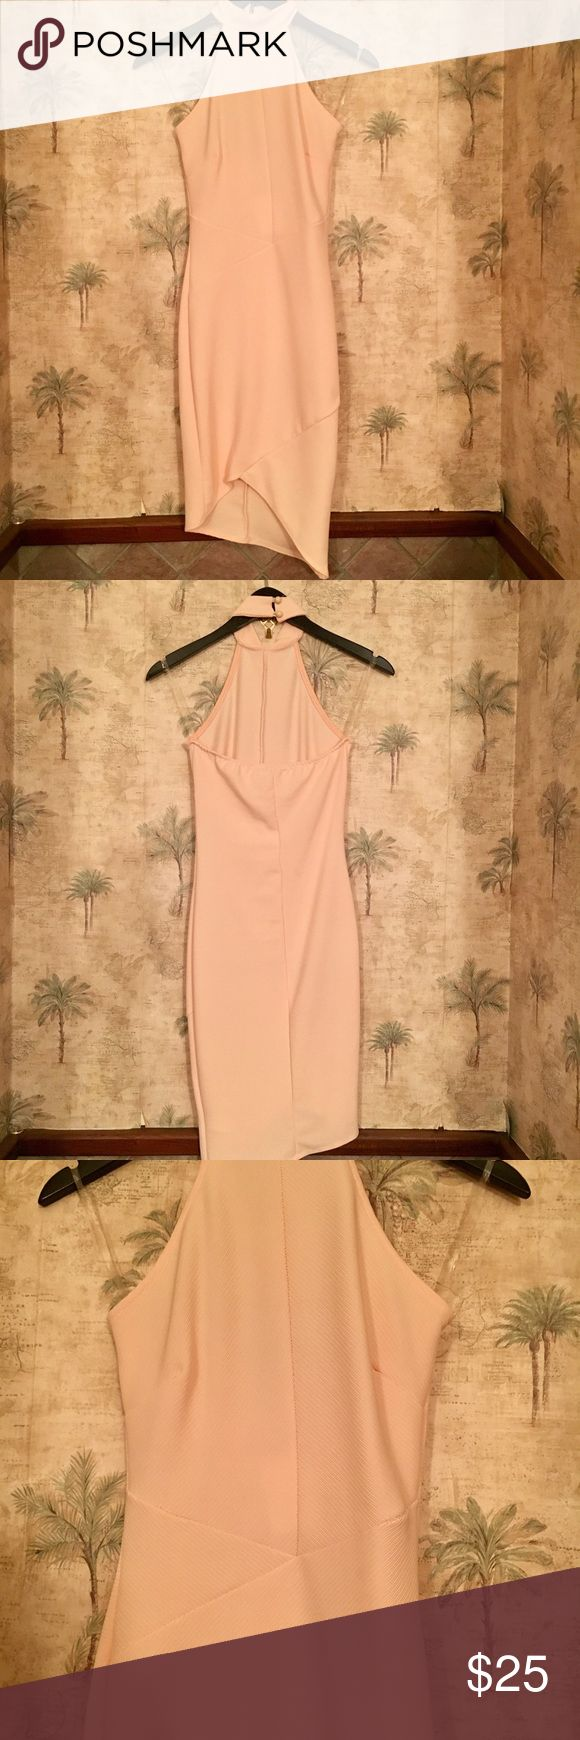 ✨✨ NEW✨✨ Charlotte Russe high neck fitted dress ❤ This brand-new Charlotte Ruuse dress is in perfect condition and has original tags attached. The high neckline and fitted bodice is super trendy right now! The color is a soft pink. The bottom of the stress is a symmetrical. From a smoke free 🚫 pet free home 🐶 Charlotte Russe Dresses Mini